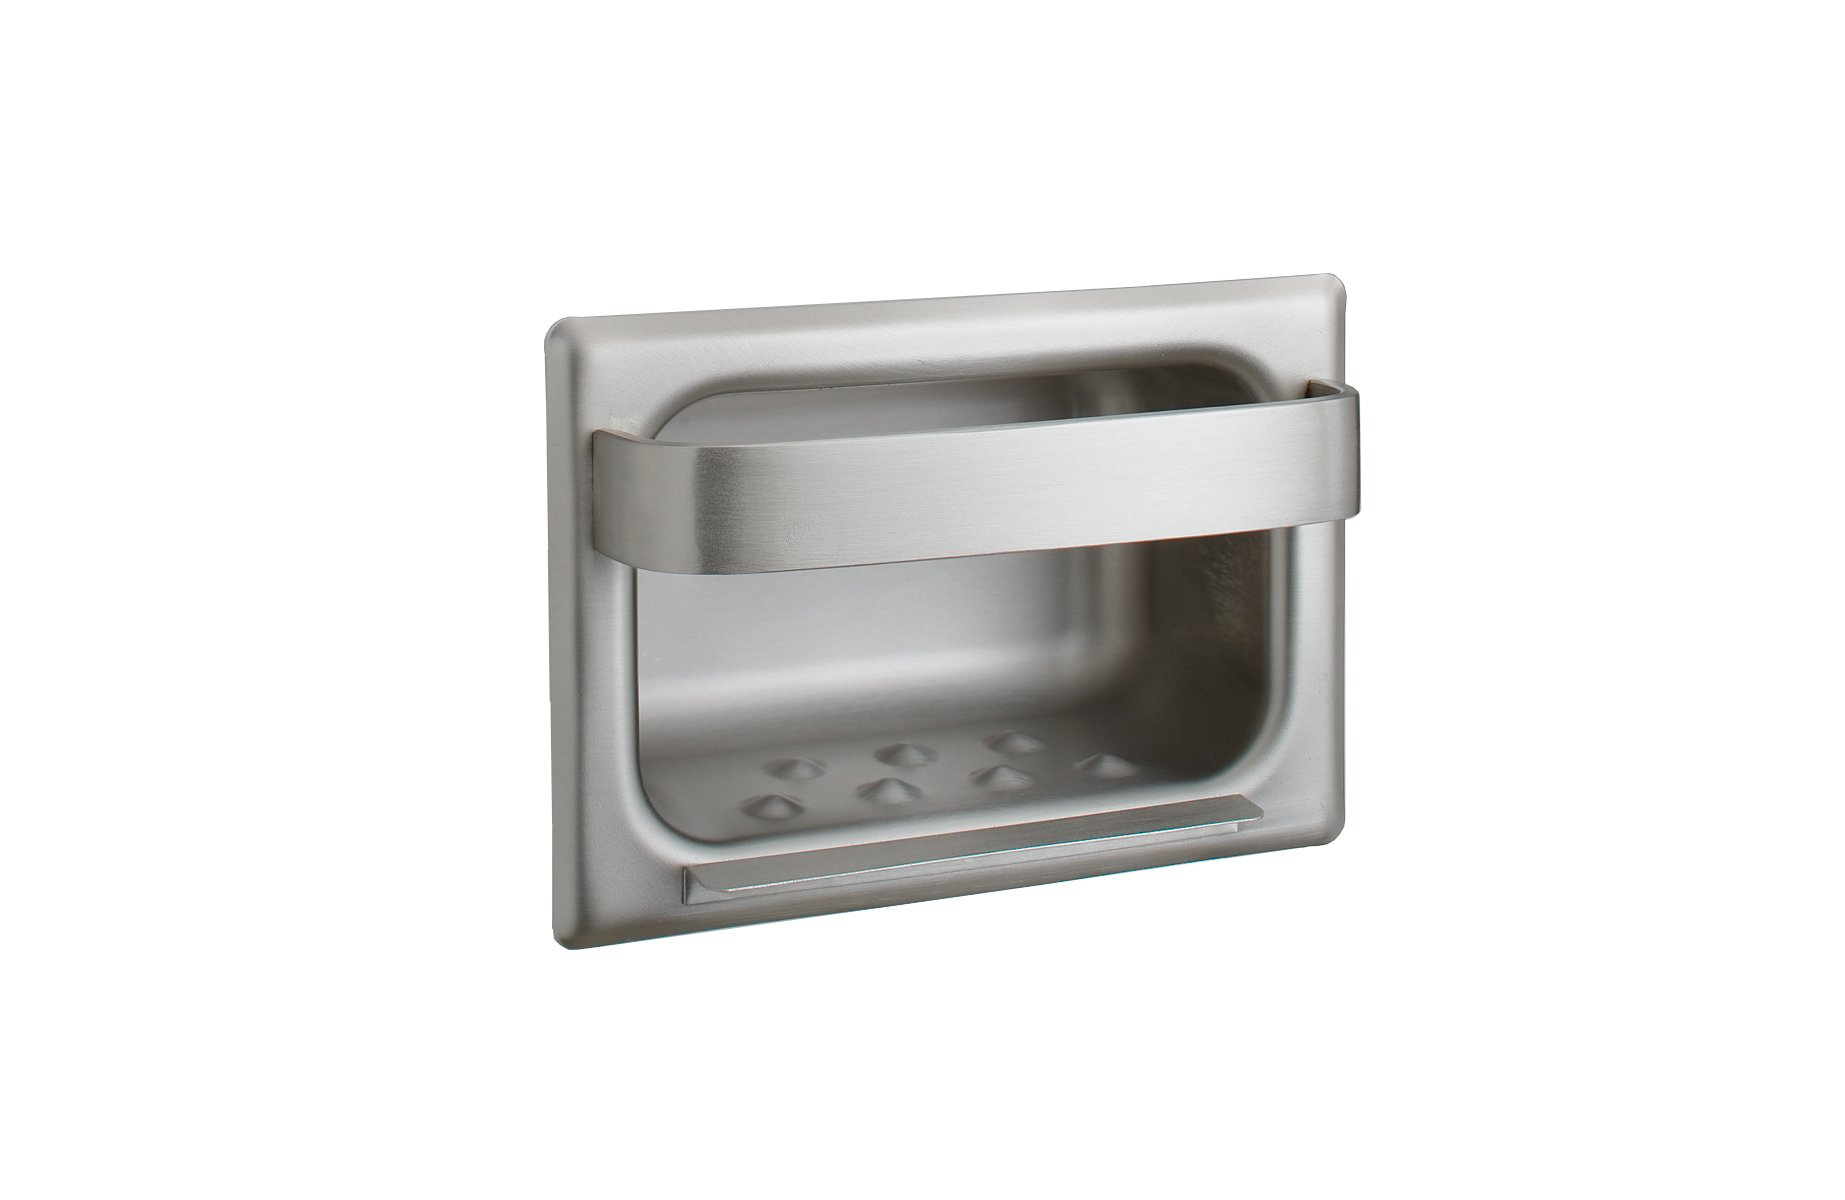 Bobrick 4390 304 Stainless Steel Recessed Heavy Duty Soap Dish and Bar, Matte Finish, 7-316'' Width x 5'' Height